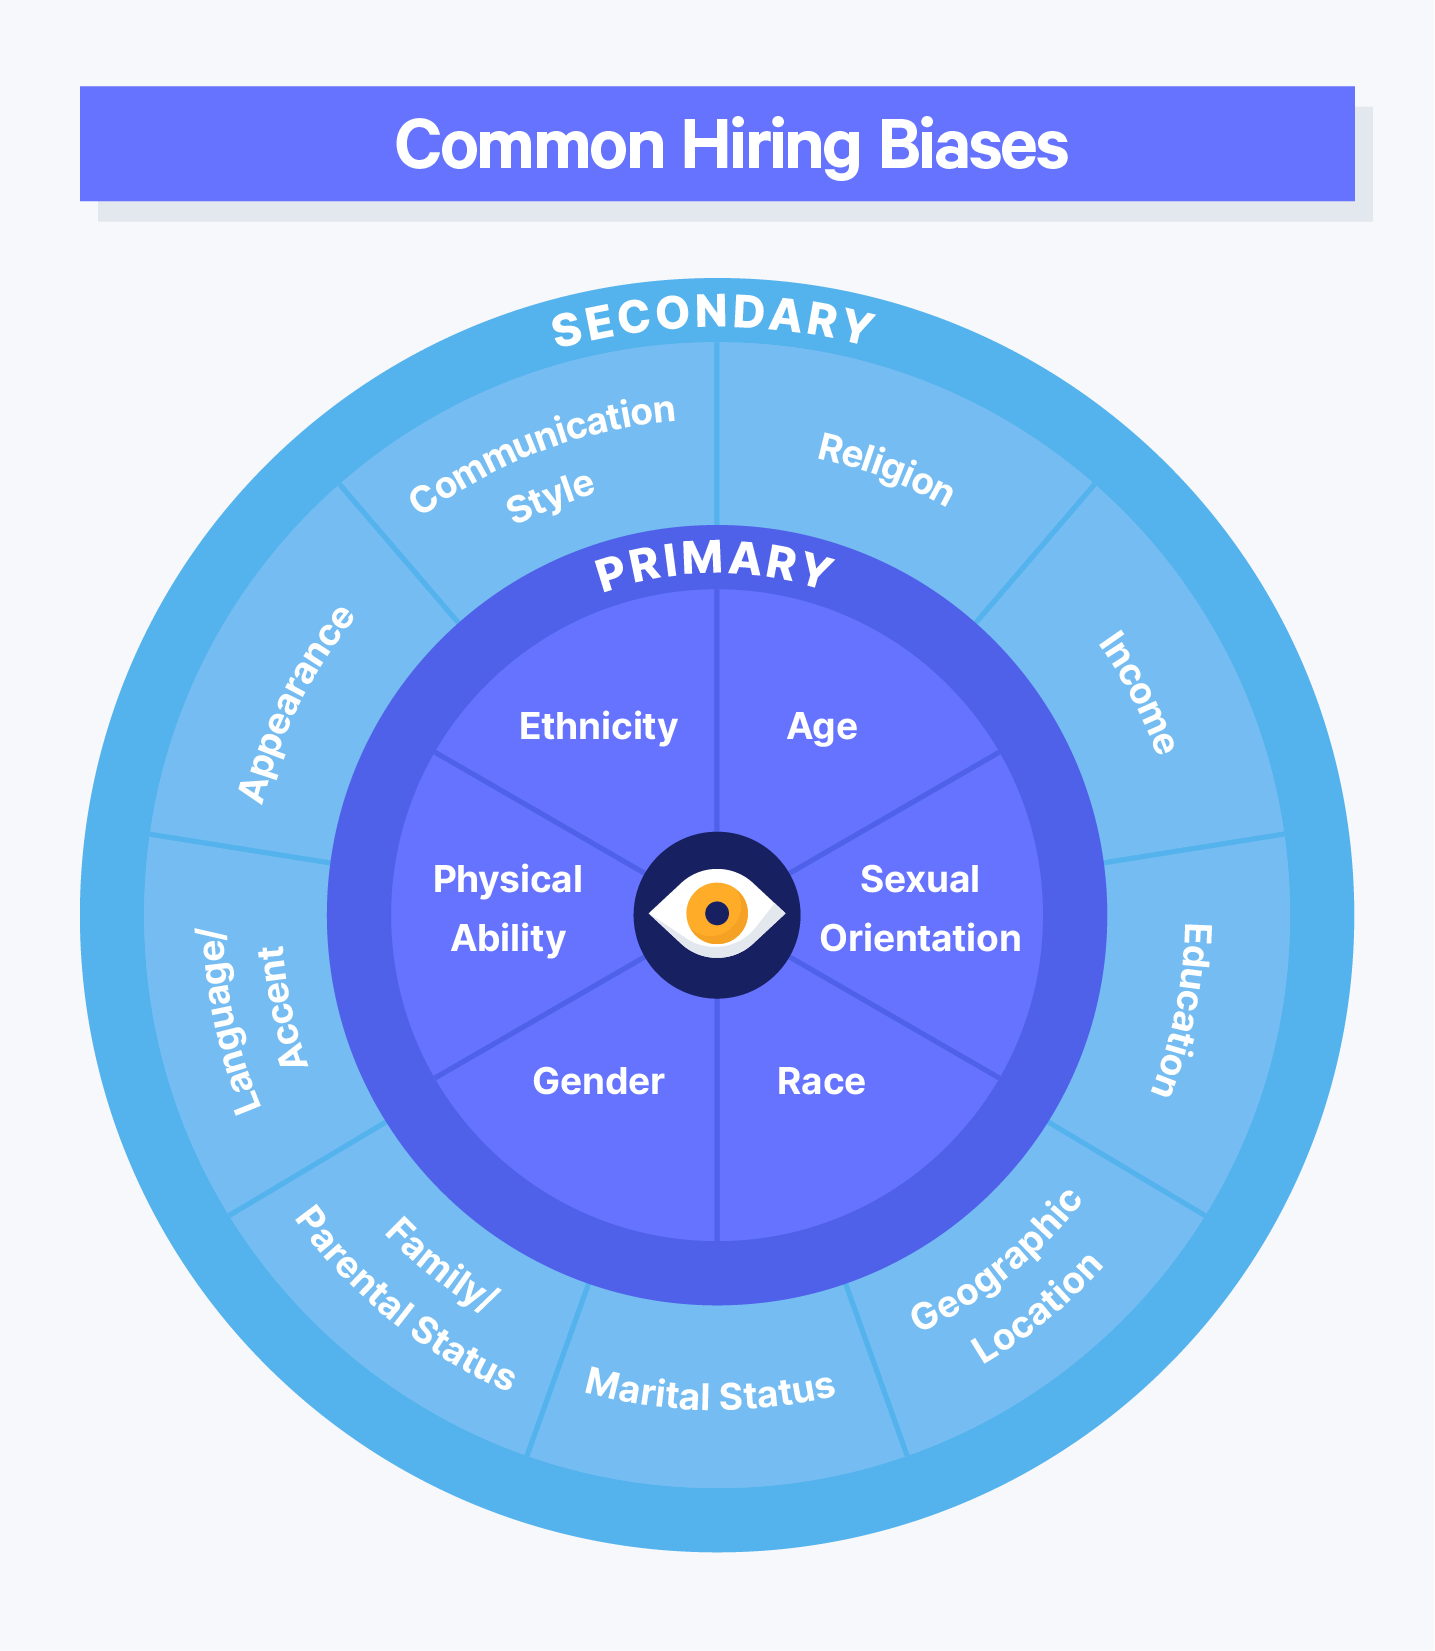 01 Common Hiring Biases